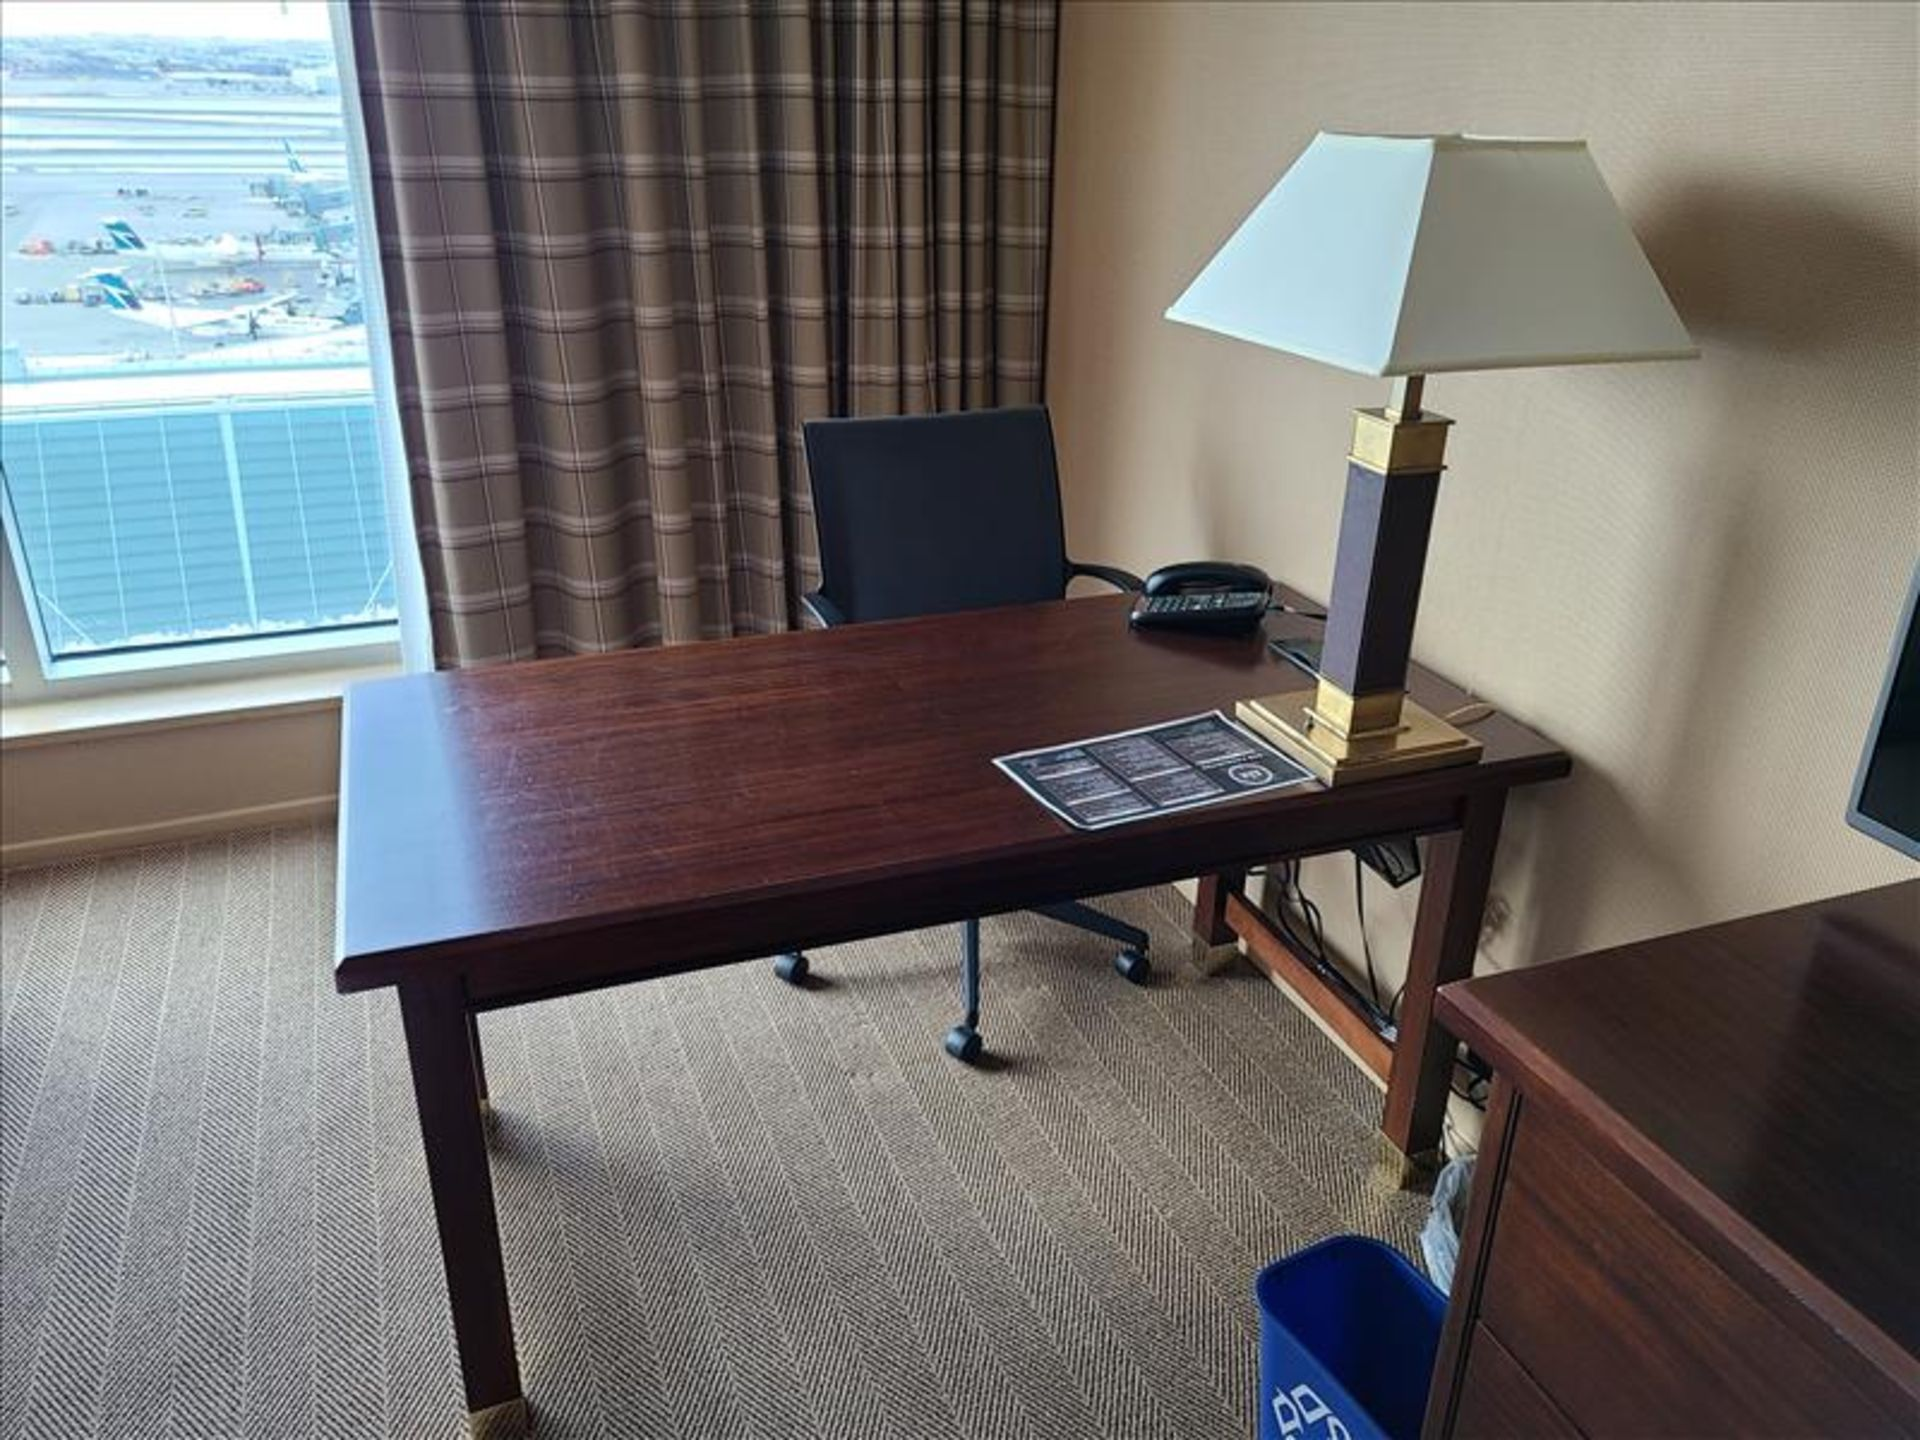 King Bedroom featuring: king size bed and frame, wood headboard, night stand, desk, desk chair, side - Image 6 of 10